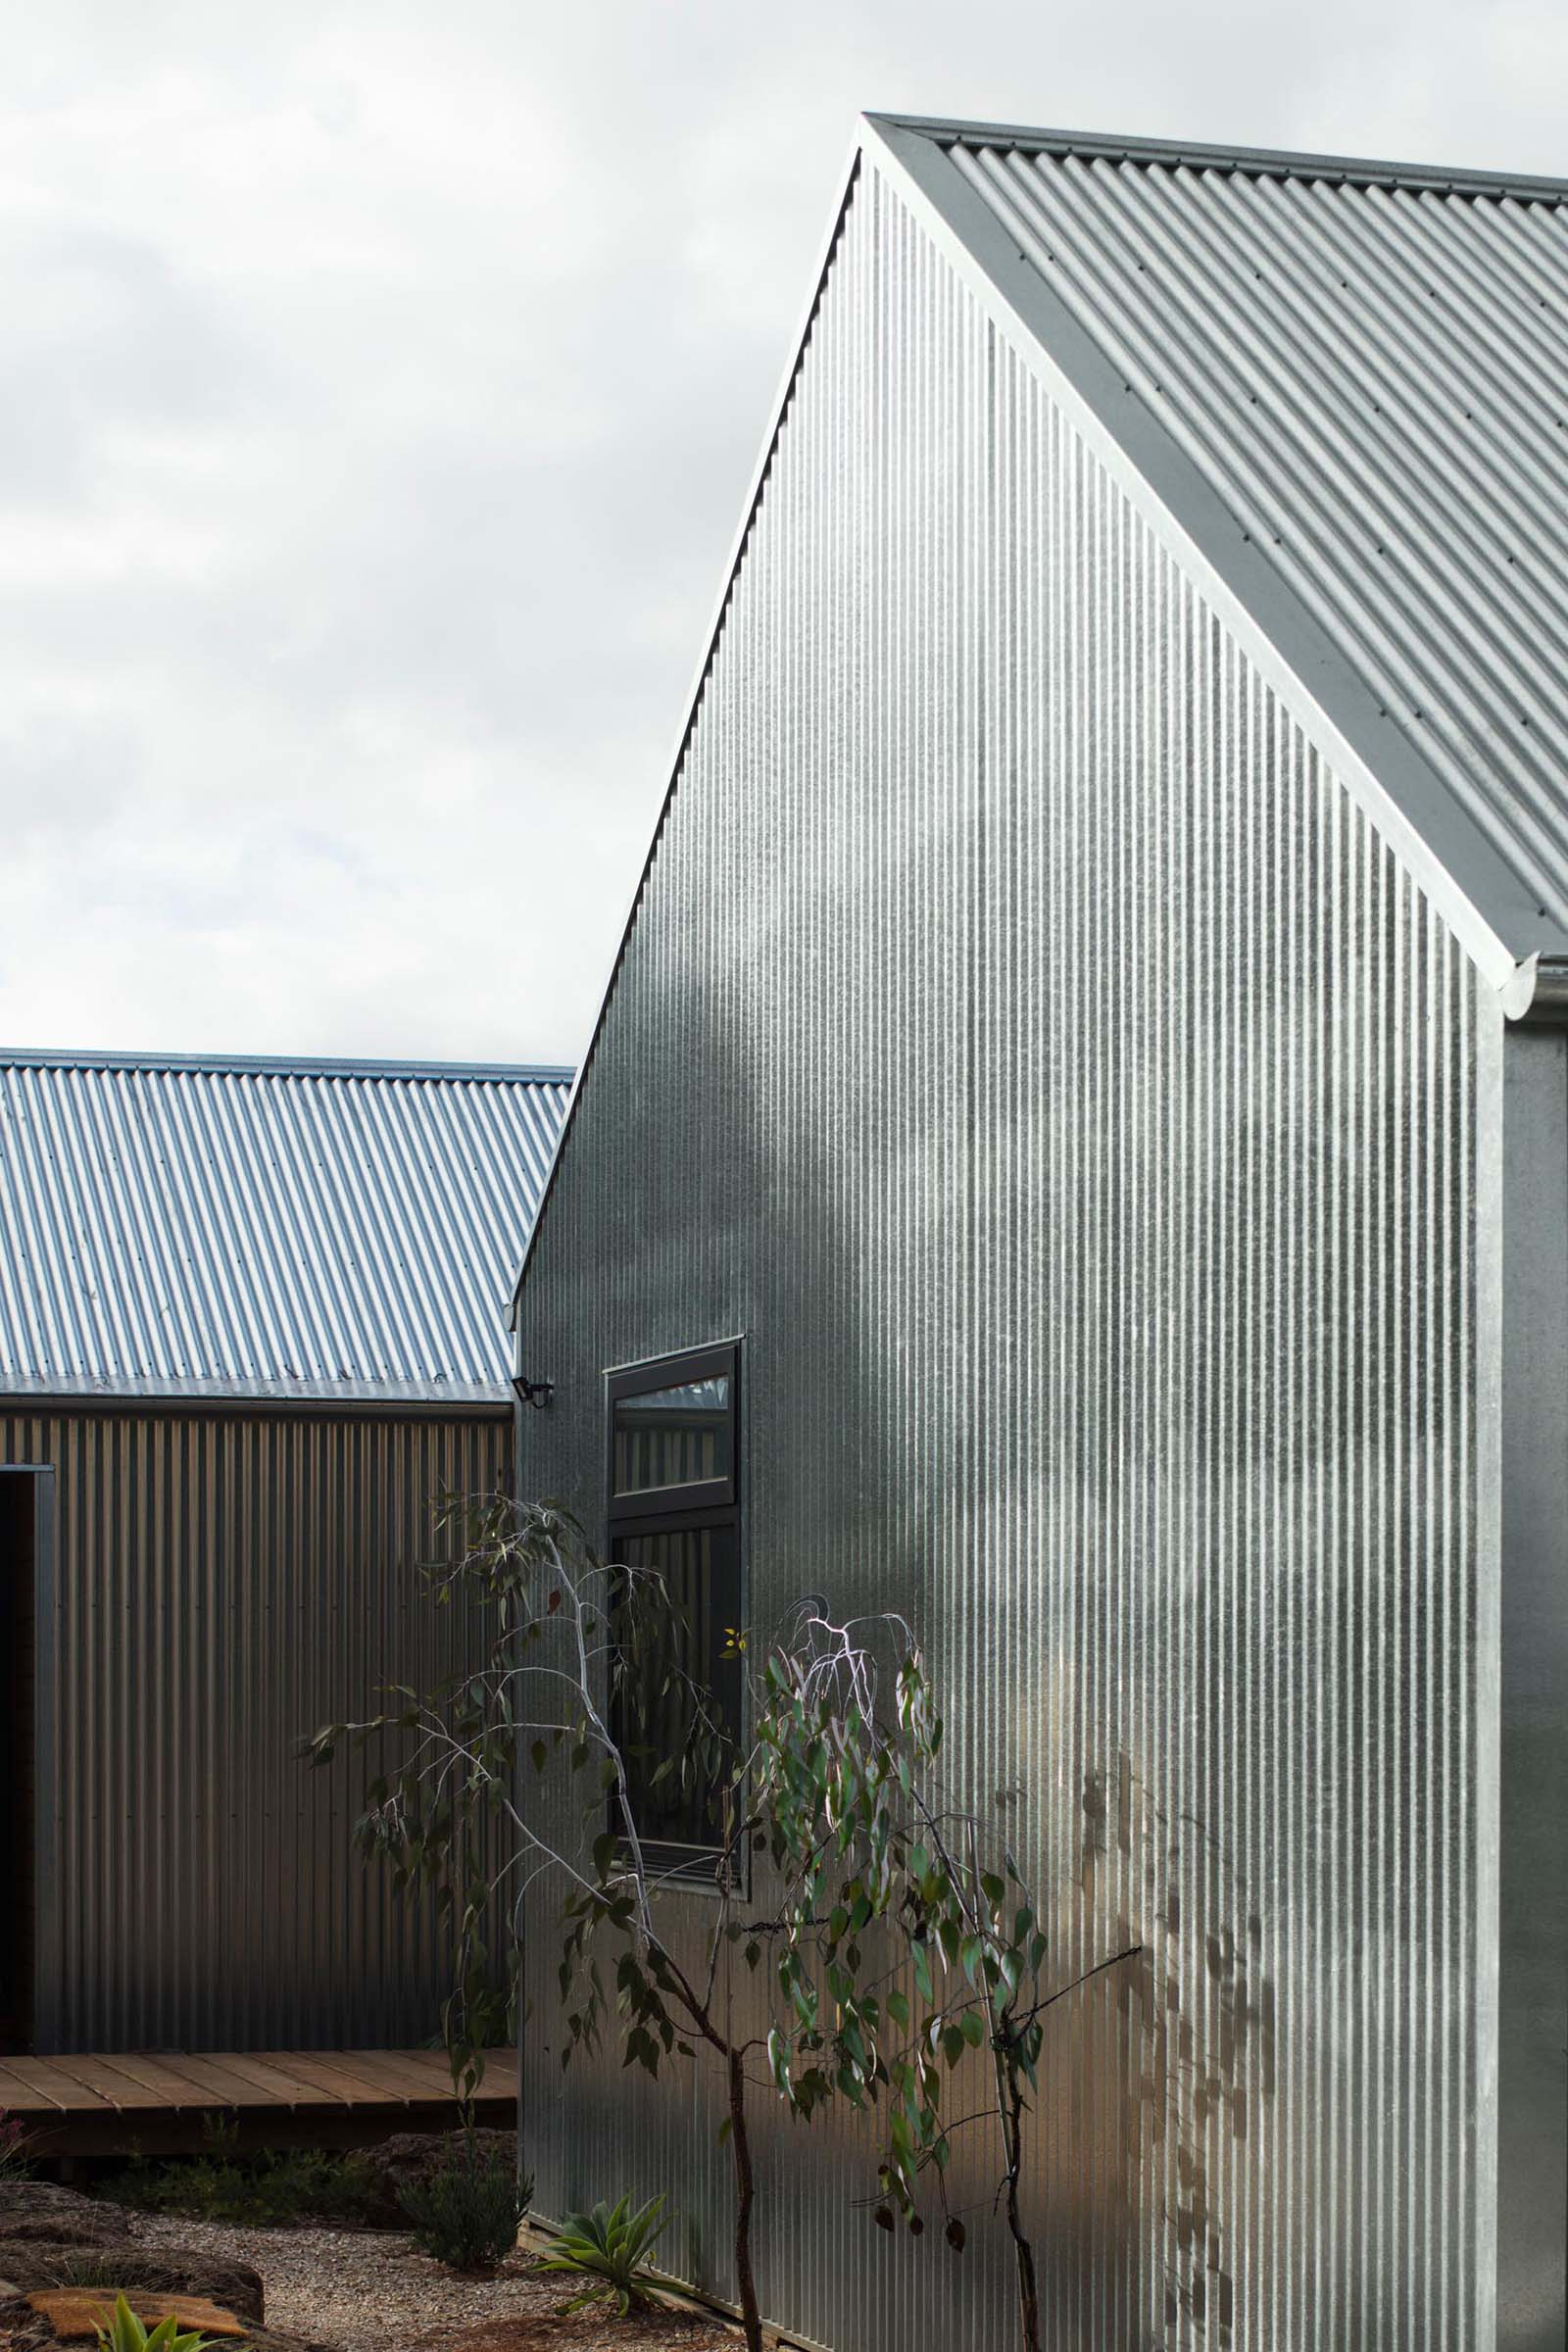 The hard exterior of corrugated galvanised steel sheeting, which covers this entire home, is designed change appearance as it ages, creating a dull finish.